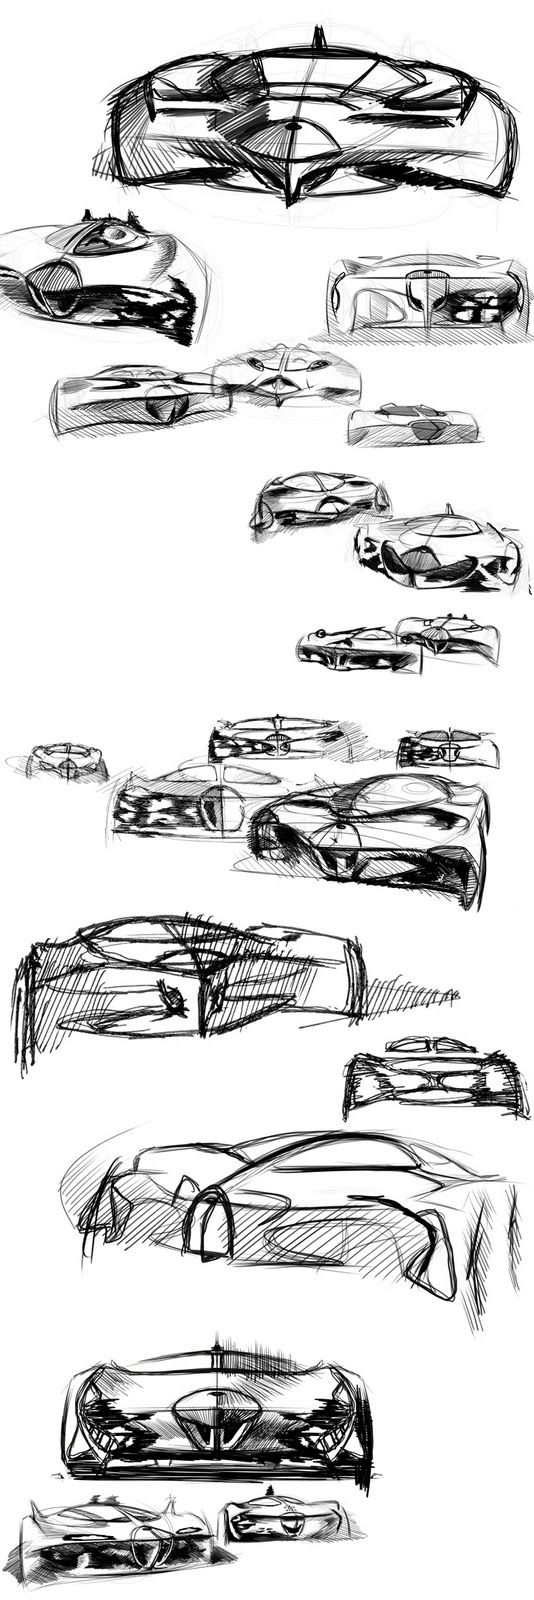 2403 best sketchs ideas and help images on Pinterest | Motorcycle ...